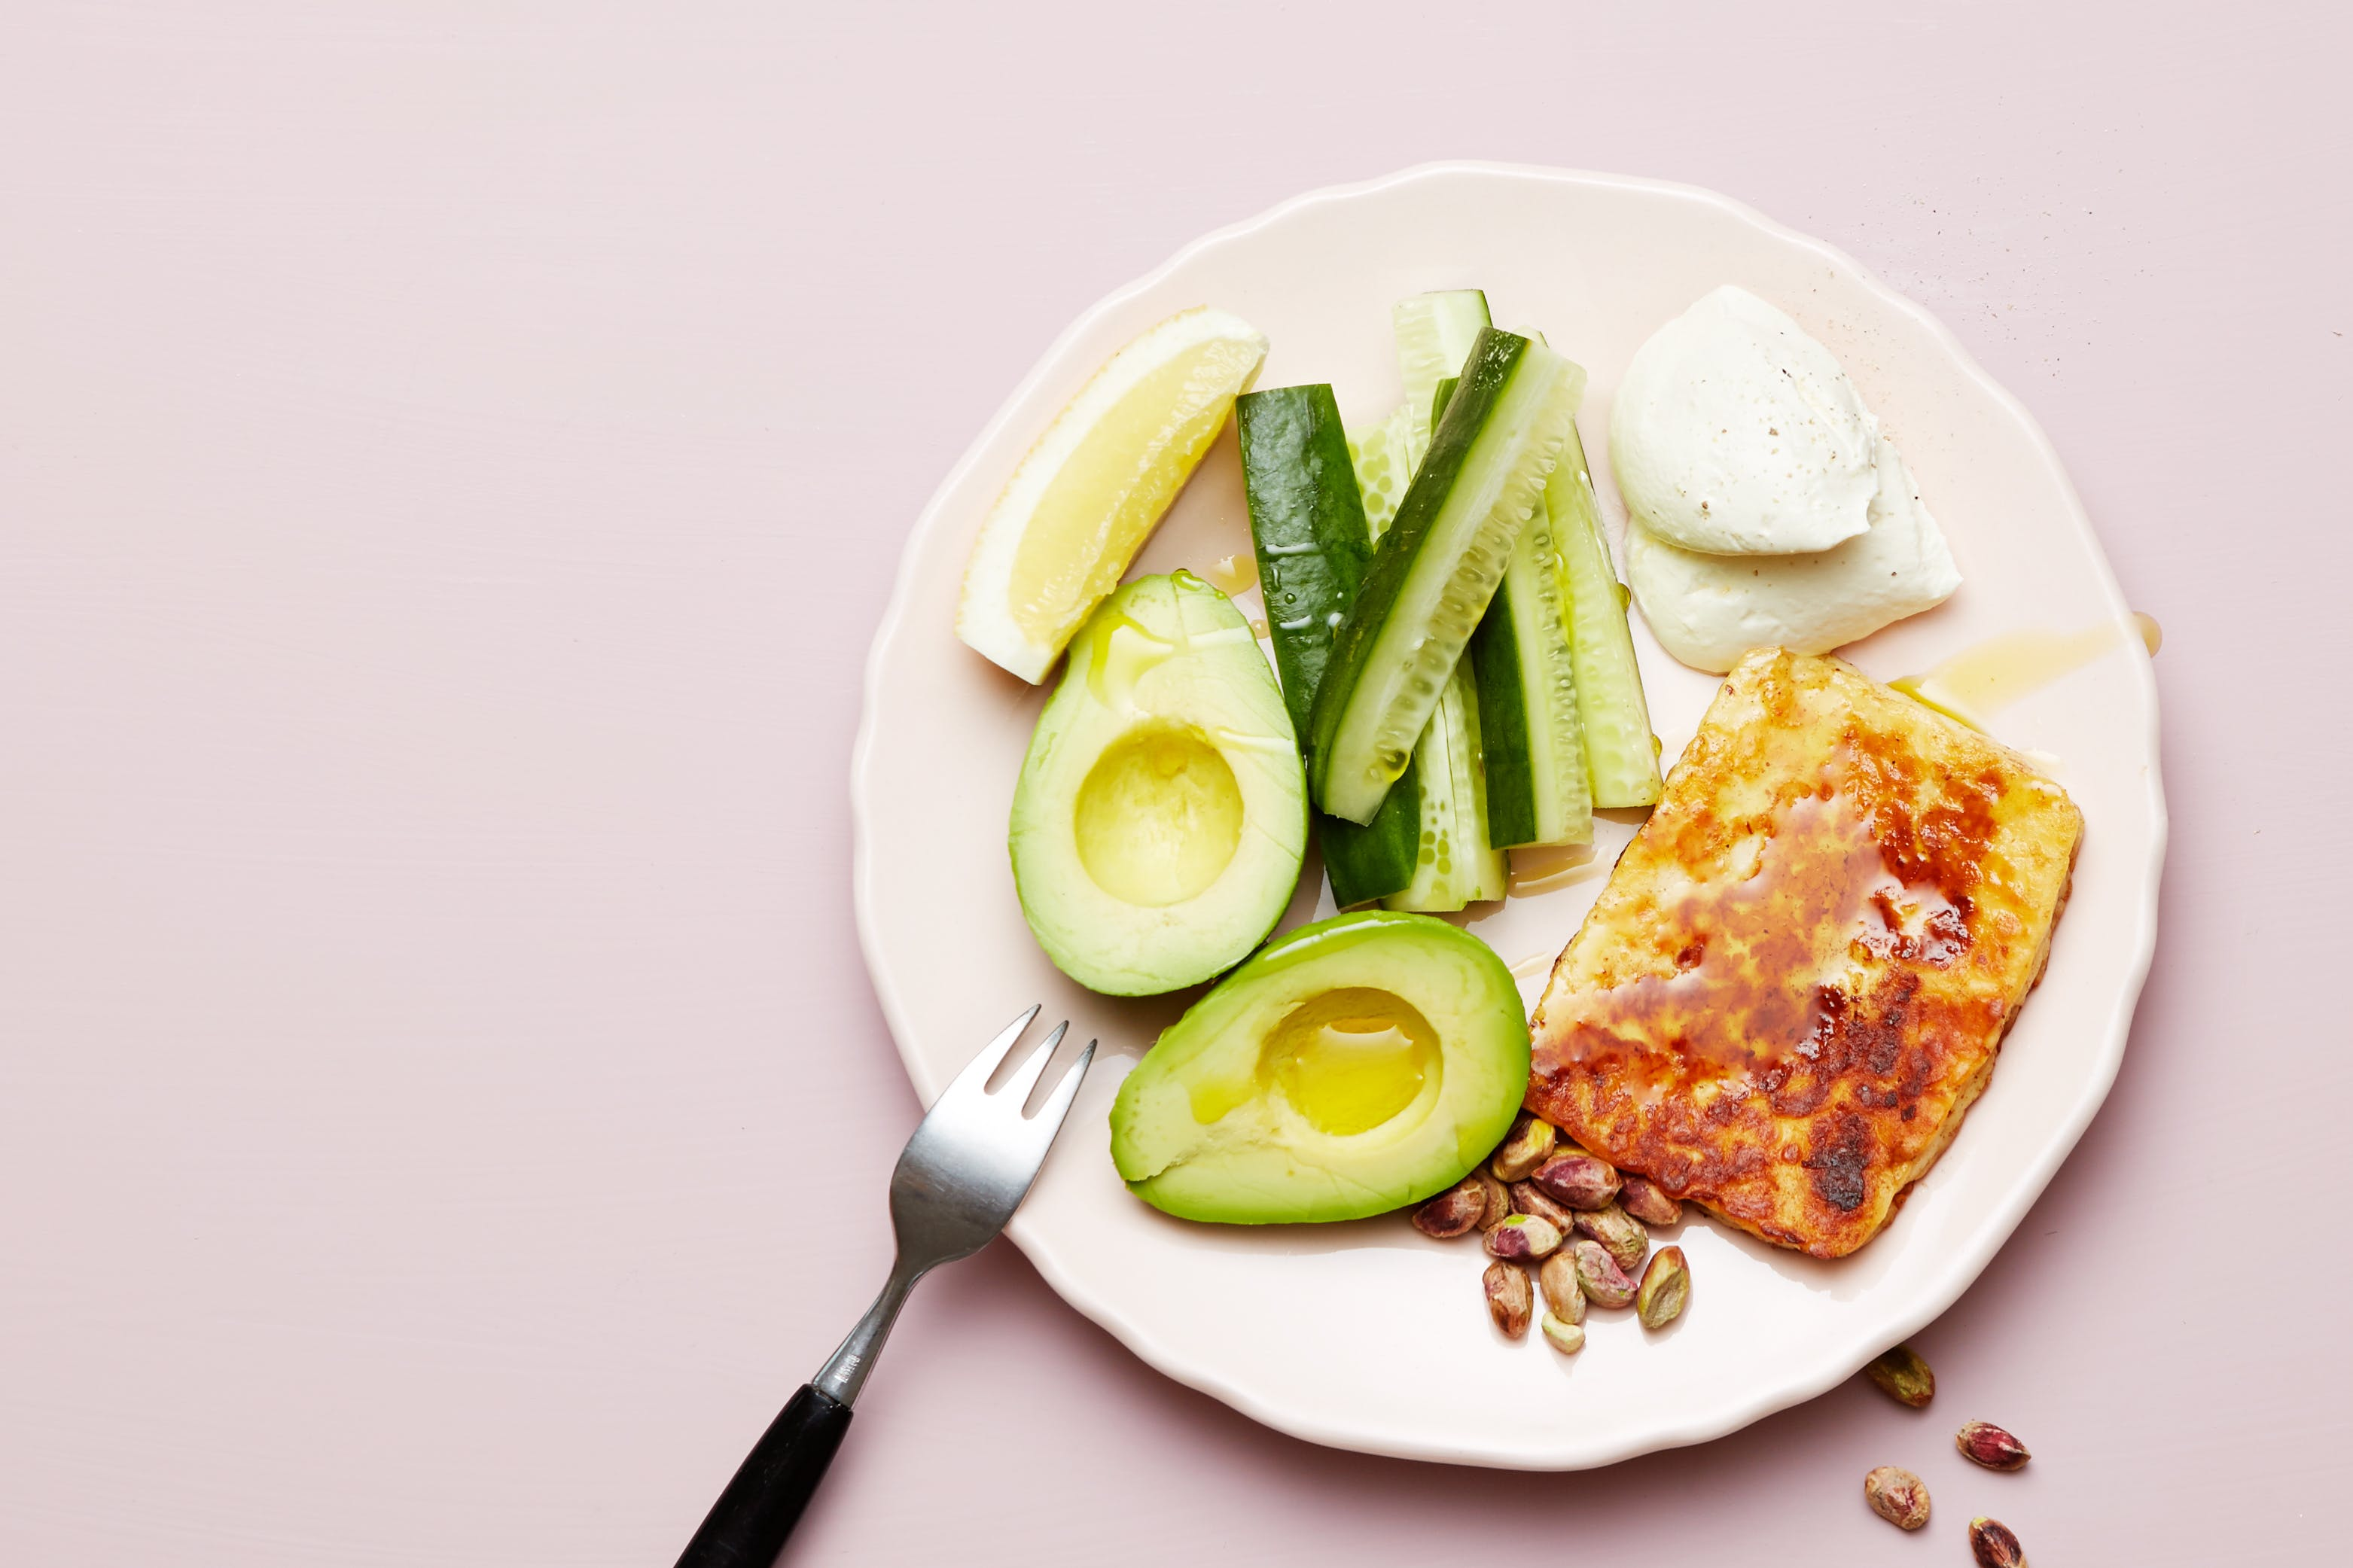 This week's meal plan: Keto: 15 minutes or less